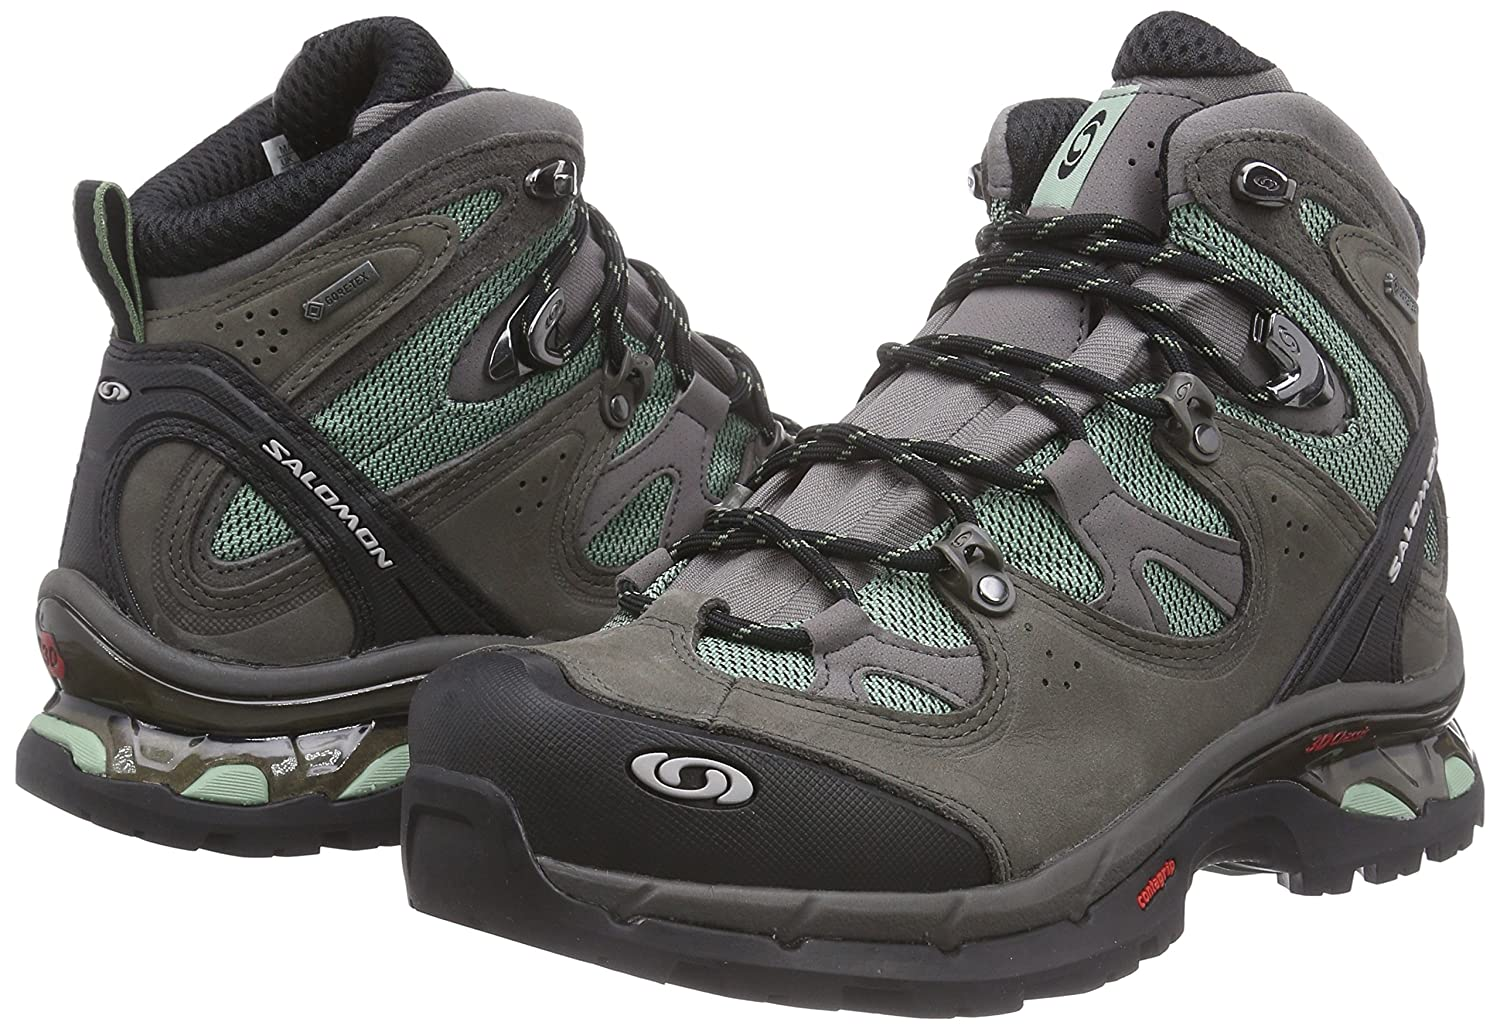 new product 21efa 14e75 Amazon.com   Salomon Women s Comet 3D Lady GTX Backpacking Boot   Hiking  Boots